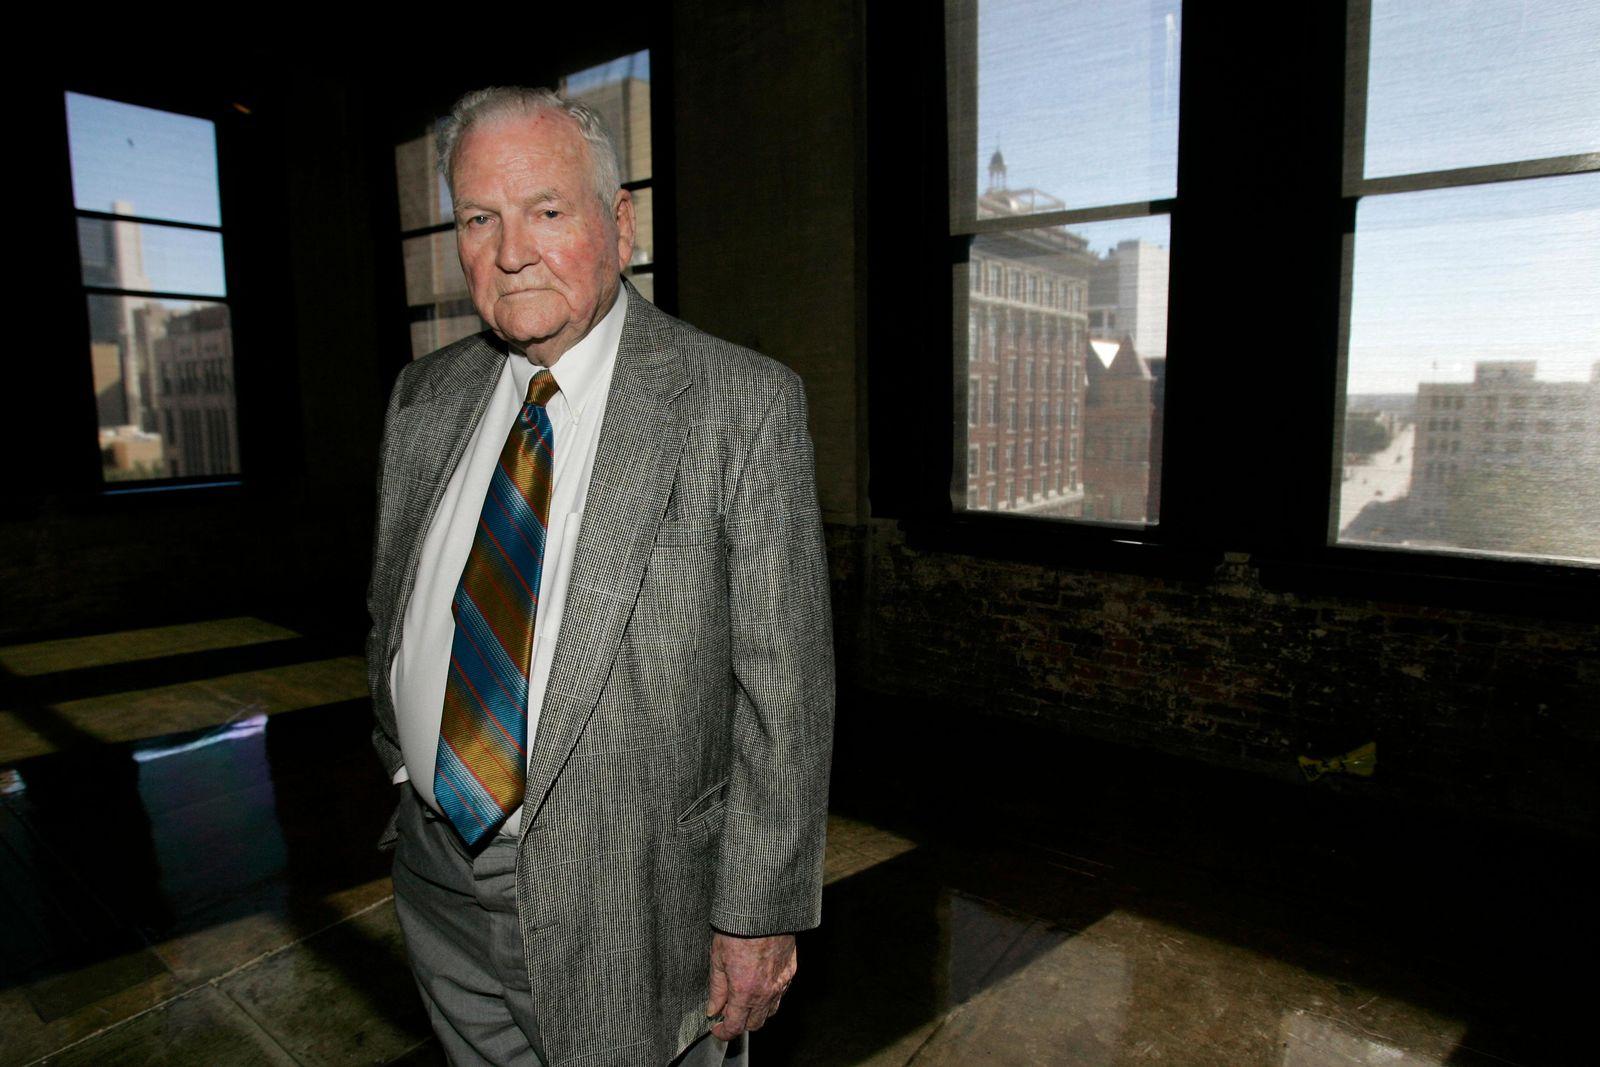 FILE - In this Nov. 19, 2008 file photo, retired Dallas Police Department Detective Jim Leavelle poses in the former book depository building, now known as The Sixth Floor Museum at Dealey Plaza, from which Lee Harvey Oswald fired the fatal shots killing President John F. Kennedy, in Dallas.{ } (AP Photo/Tony Gutierrez)